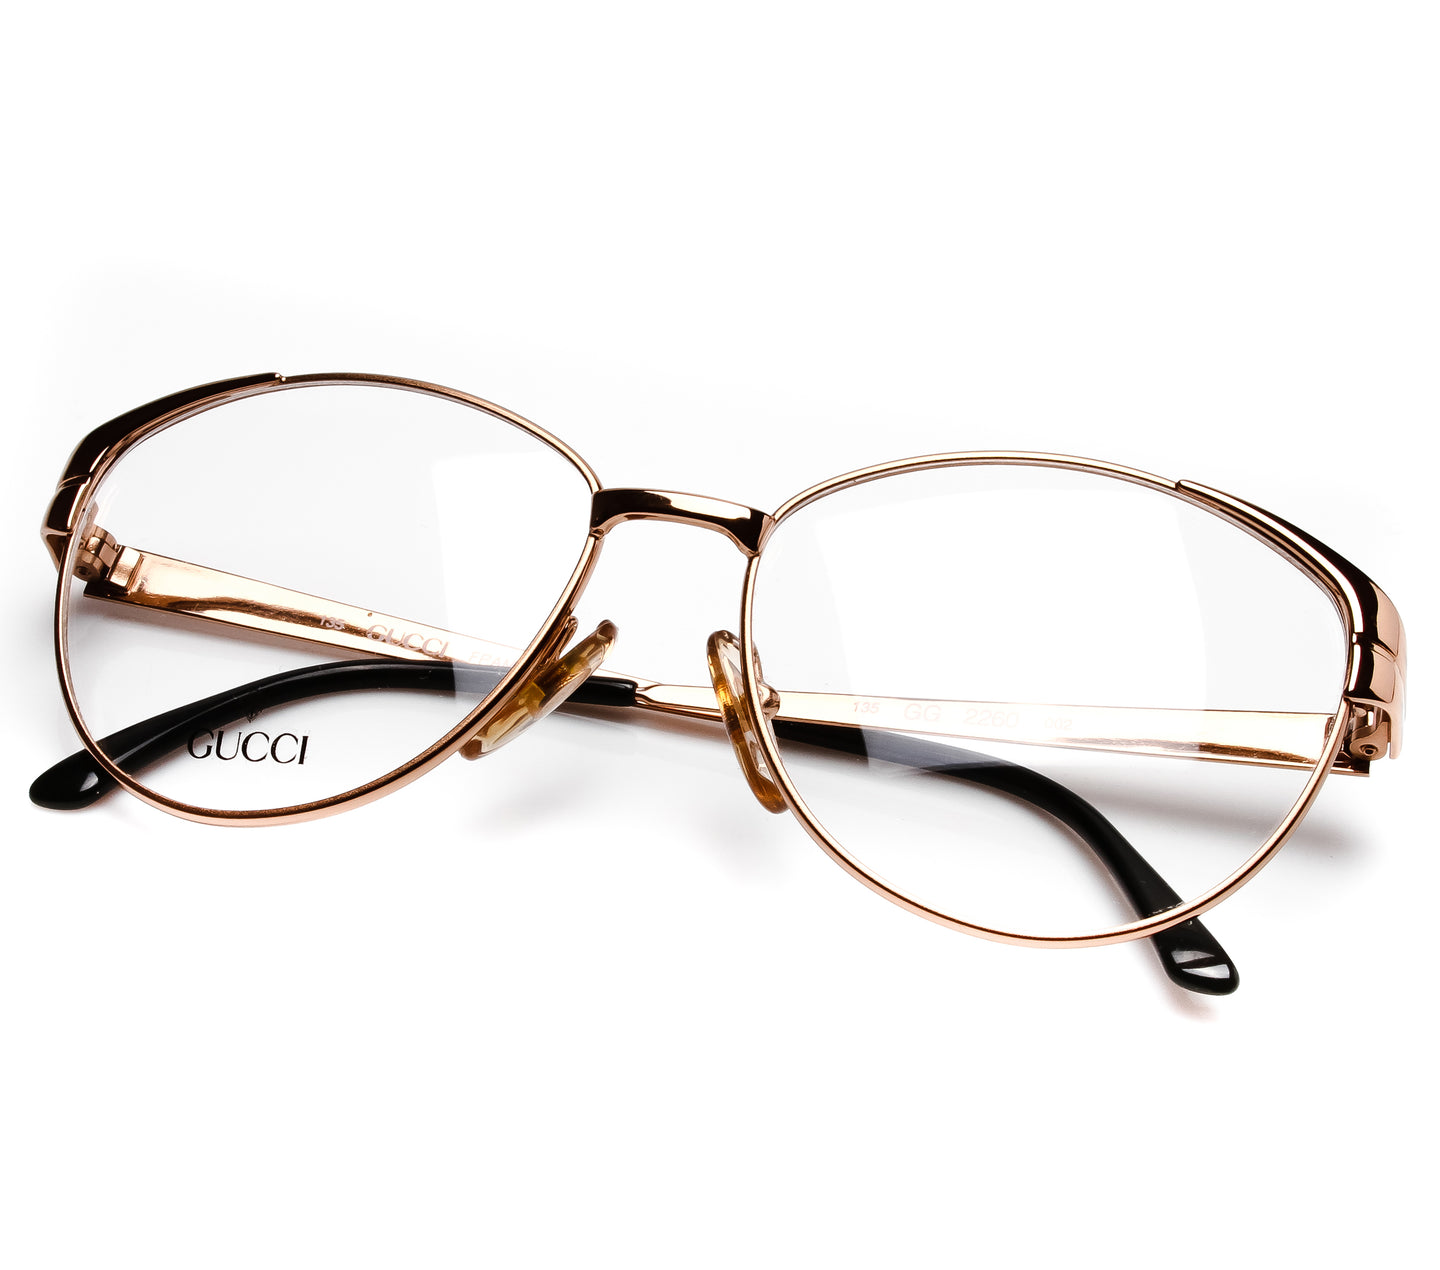 Gucci 2260 002 Thumbnail, Gucci , glasses frames, eyeglasses online, eyeglass frames, mens glasses, womens glasses, buy glasses online, designer eyeglasses, vintage sunglasses, retro sunglasses, vintage glasses, sunglass, eyeglass, glasses, lens, vintage frames company, vf